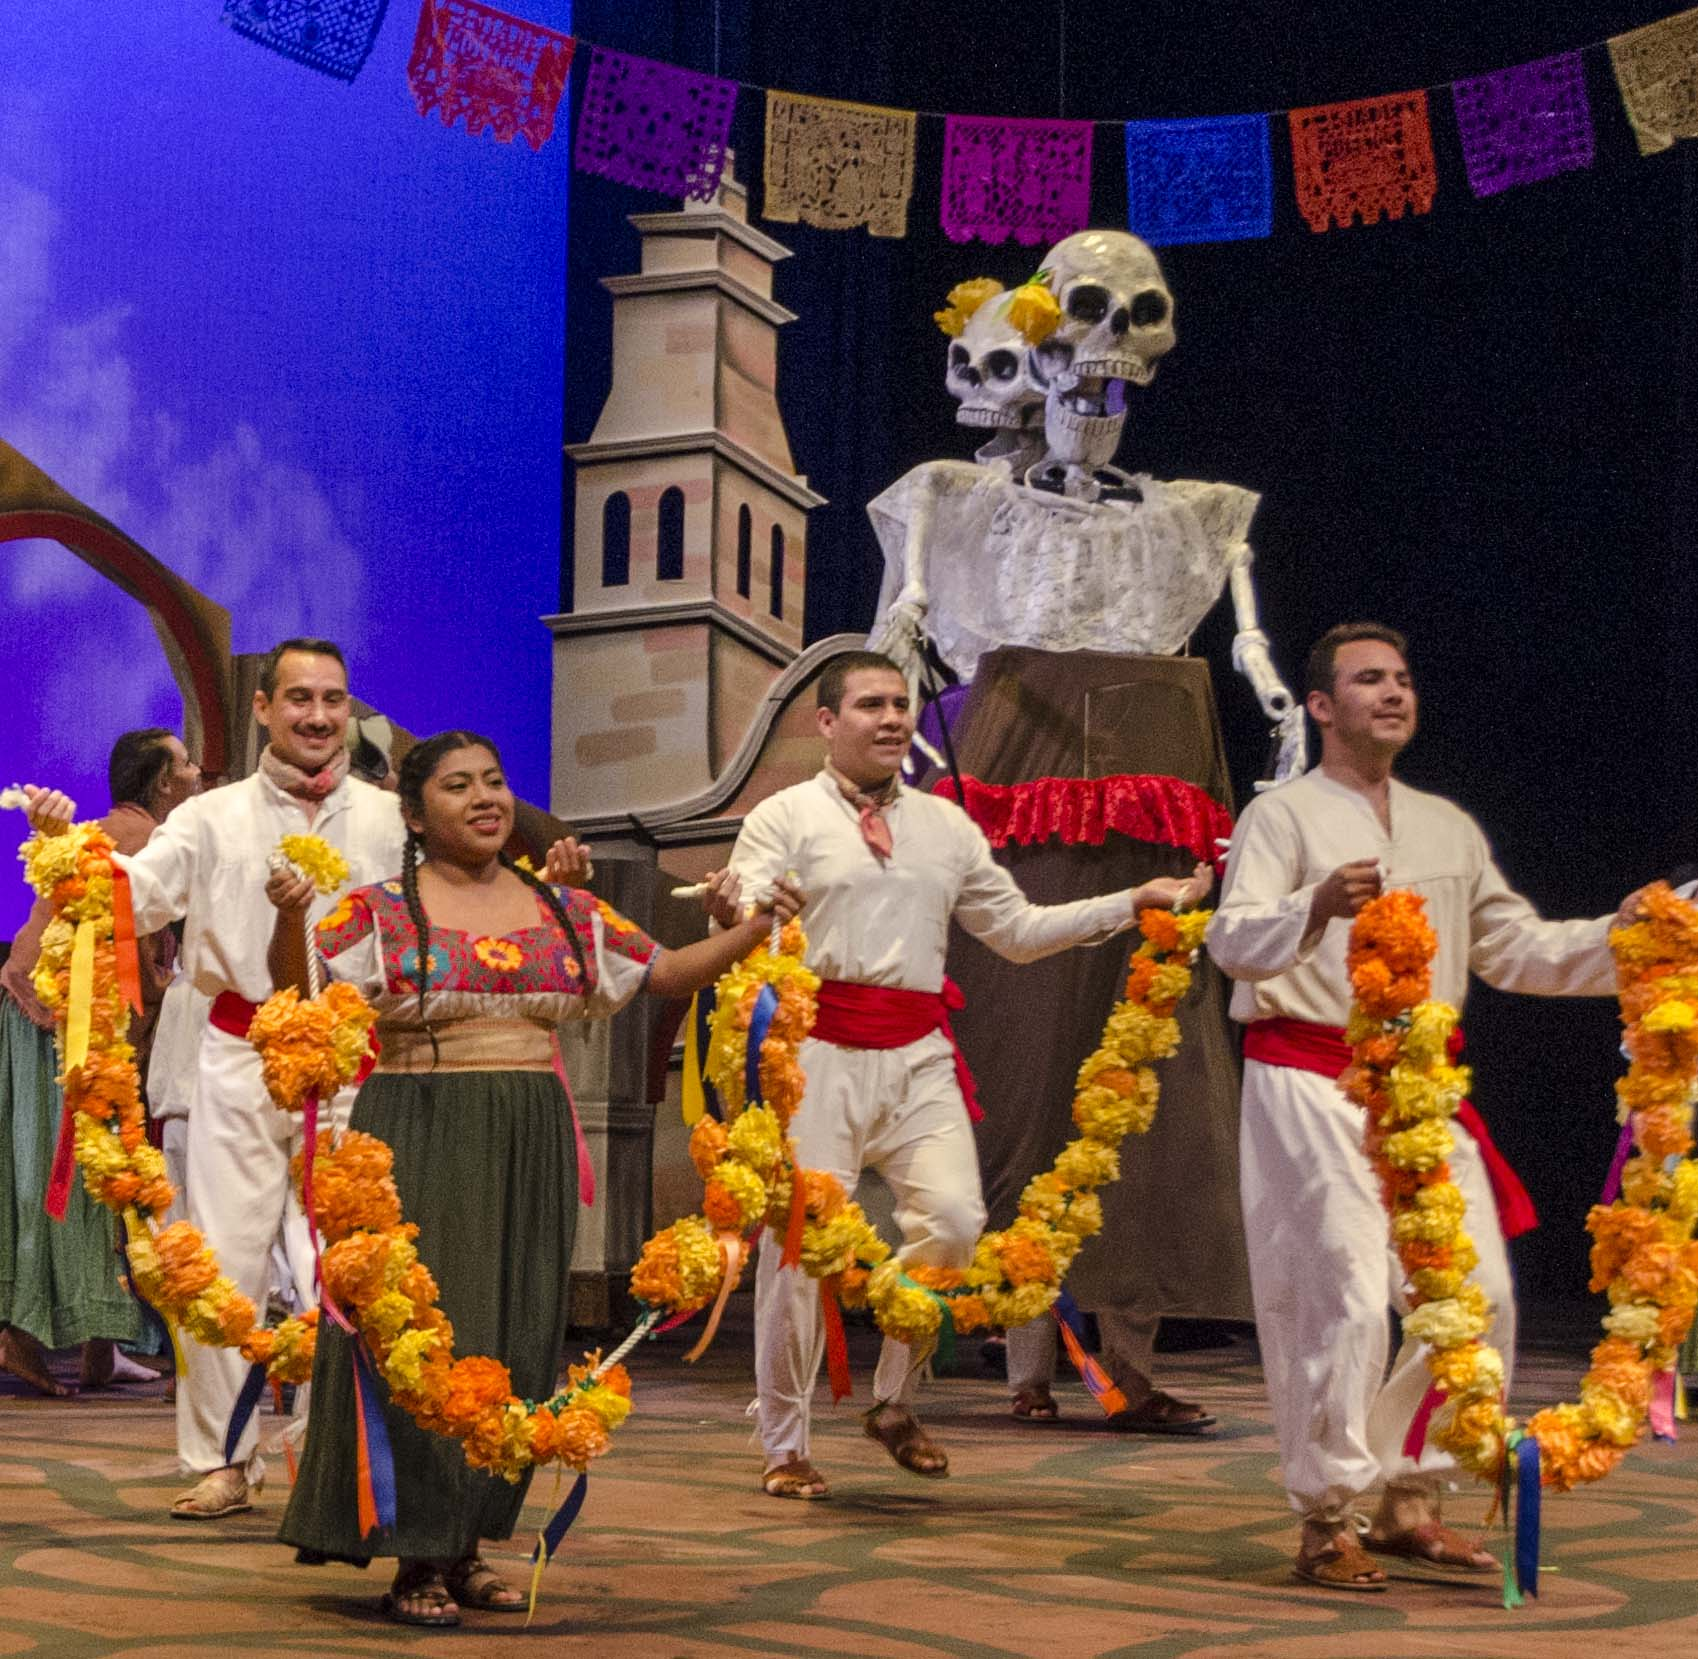 Scene from Macario - dancers holding chains of paper flowers dance in front of large skeleton puppets